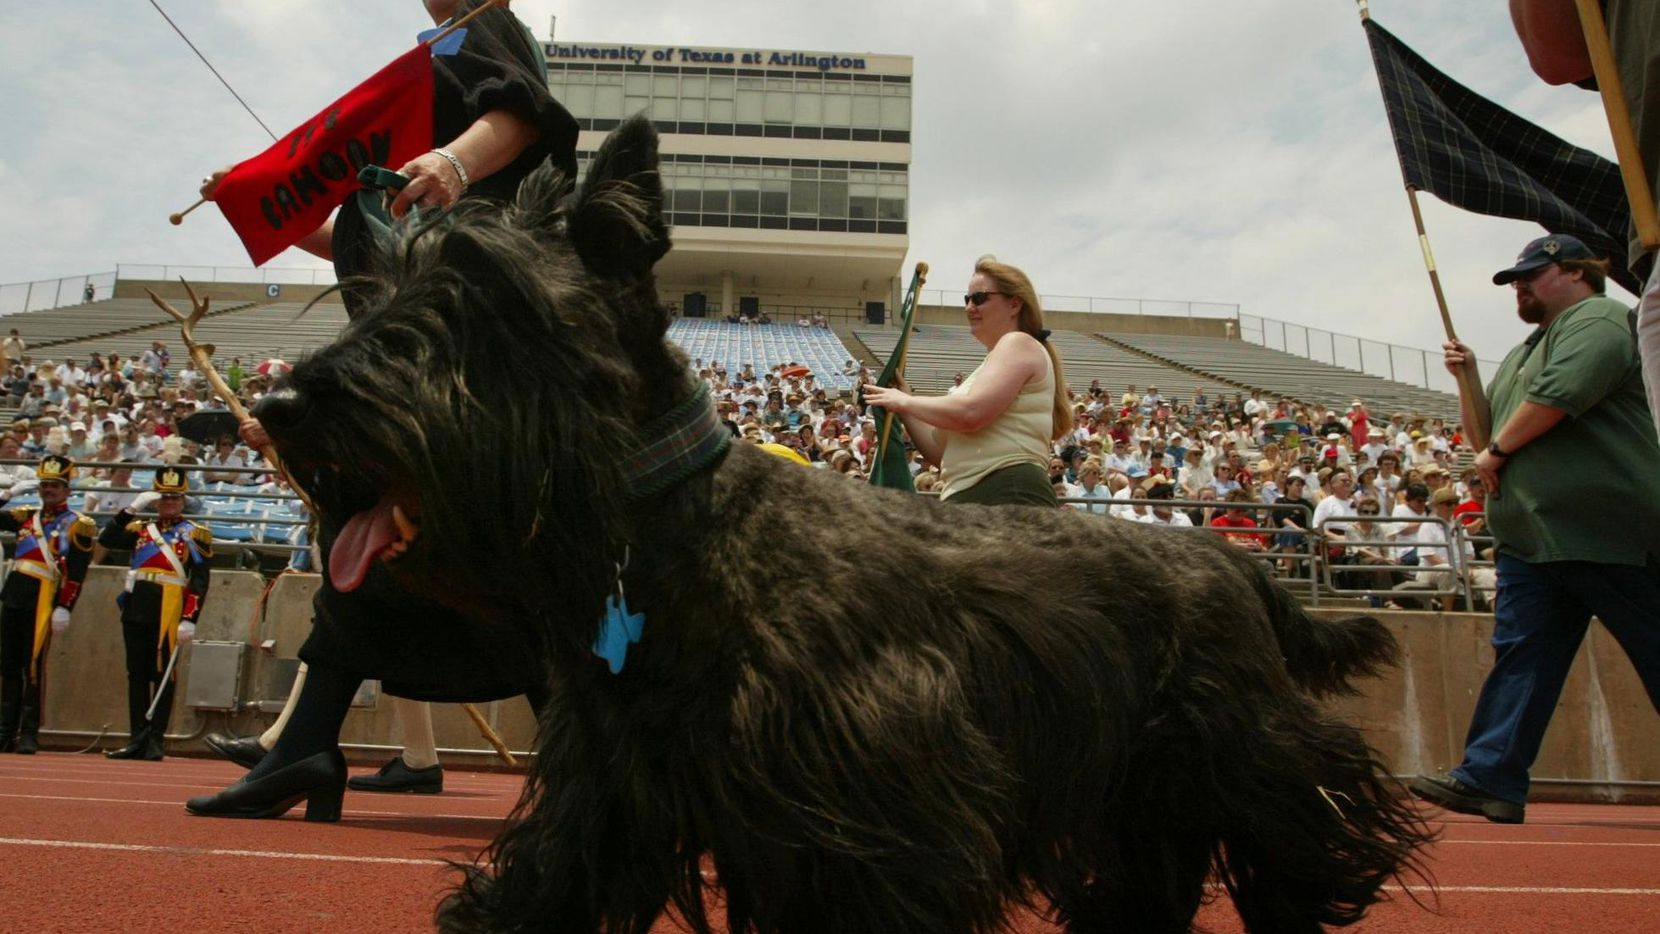 A Scottish terrier and owner enter during the parade of clans at the Texas Scottish Festival and Highland Games at Maverick Stadium on the campus of the University of Texas at Arlington.